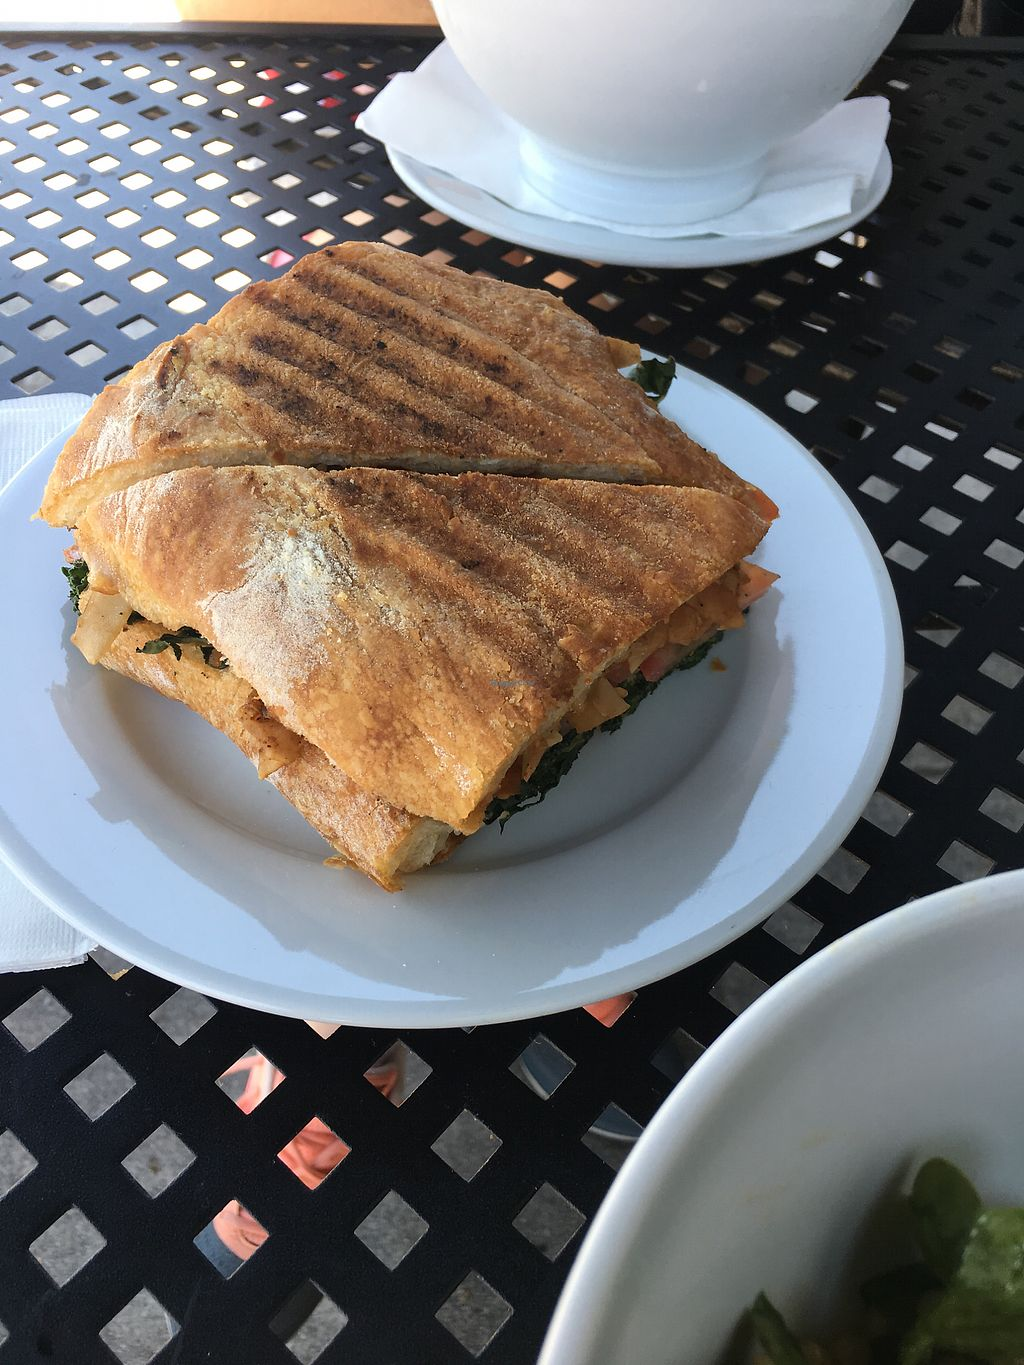 "Photo of Habitat Coffee Shop  by <a href=""/members/profile/billierod"">billierod</a> <br/>Vegan BLT  <br/> July 5, 2017  - <a href='/contact/abuse/image/71190/276809'>Report</a>"